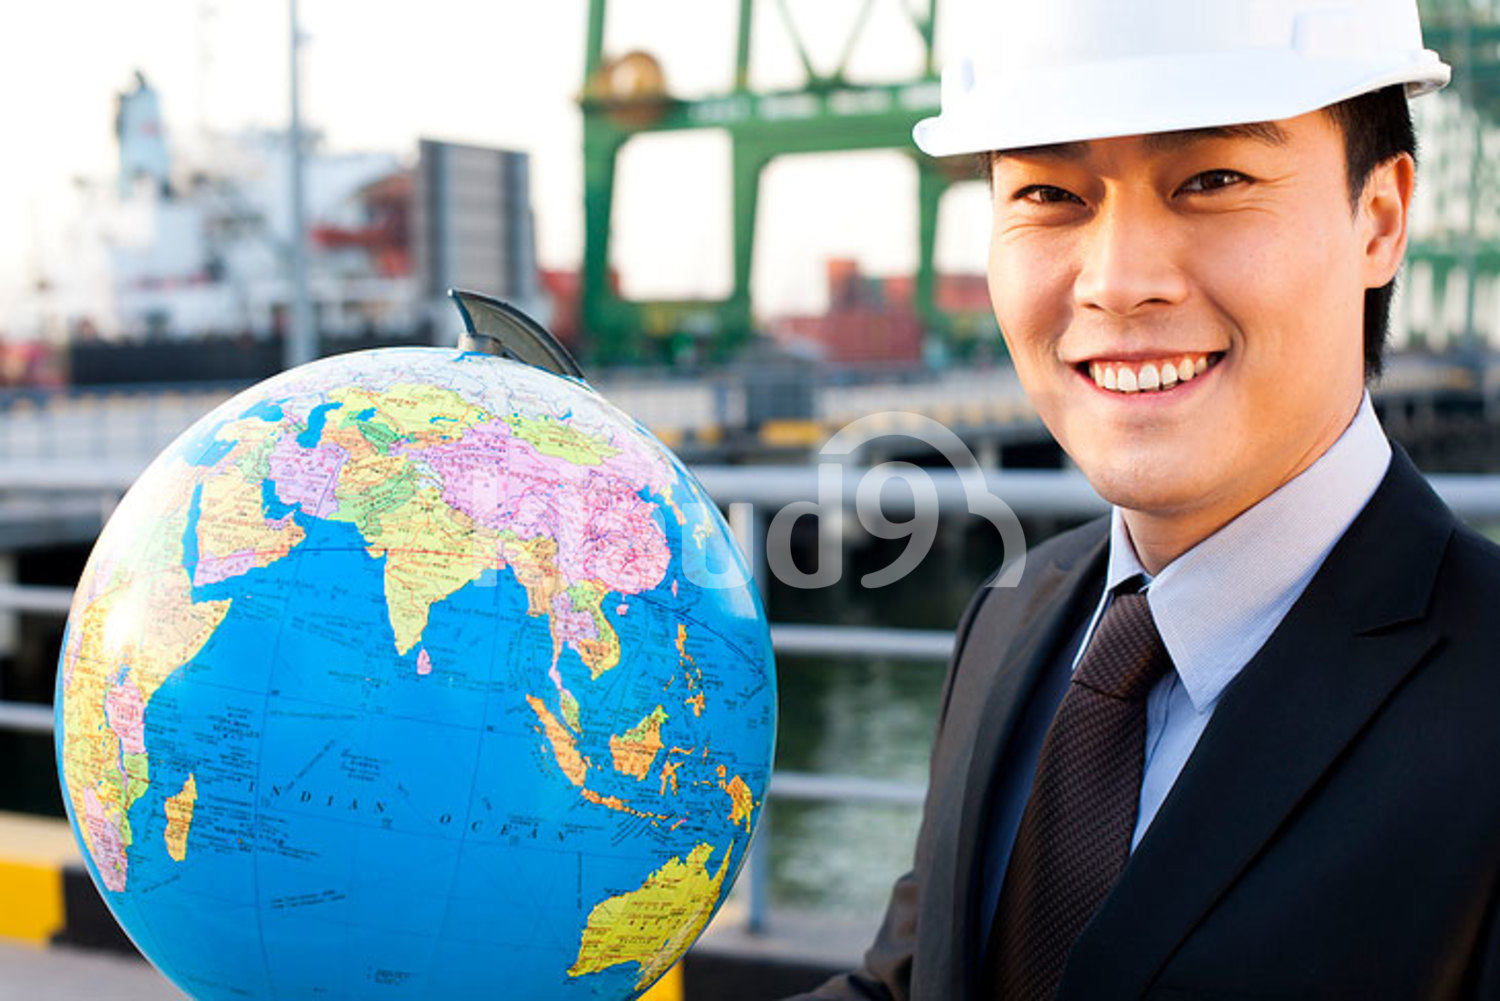 Chinese businessman with a globe at a shipping port